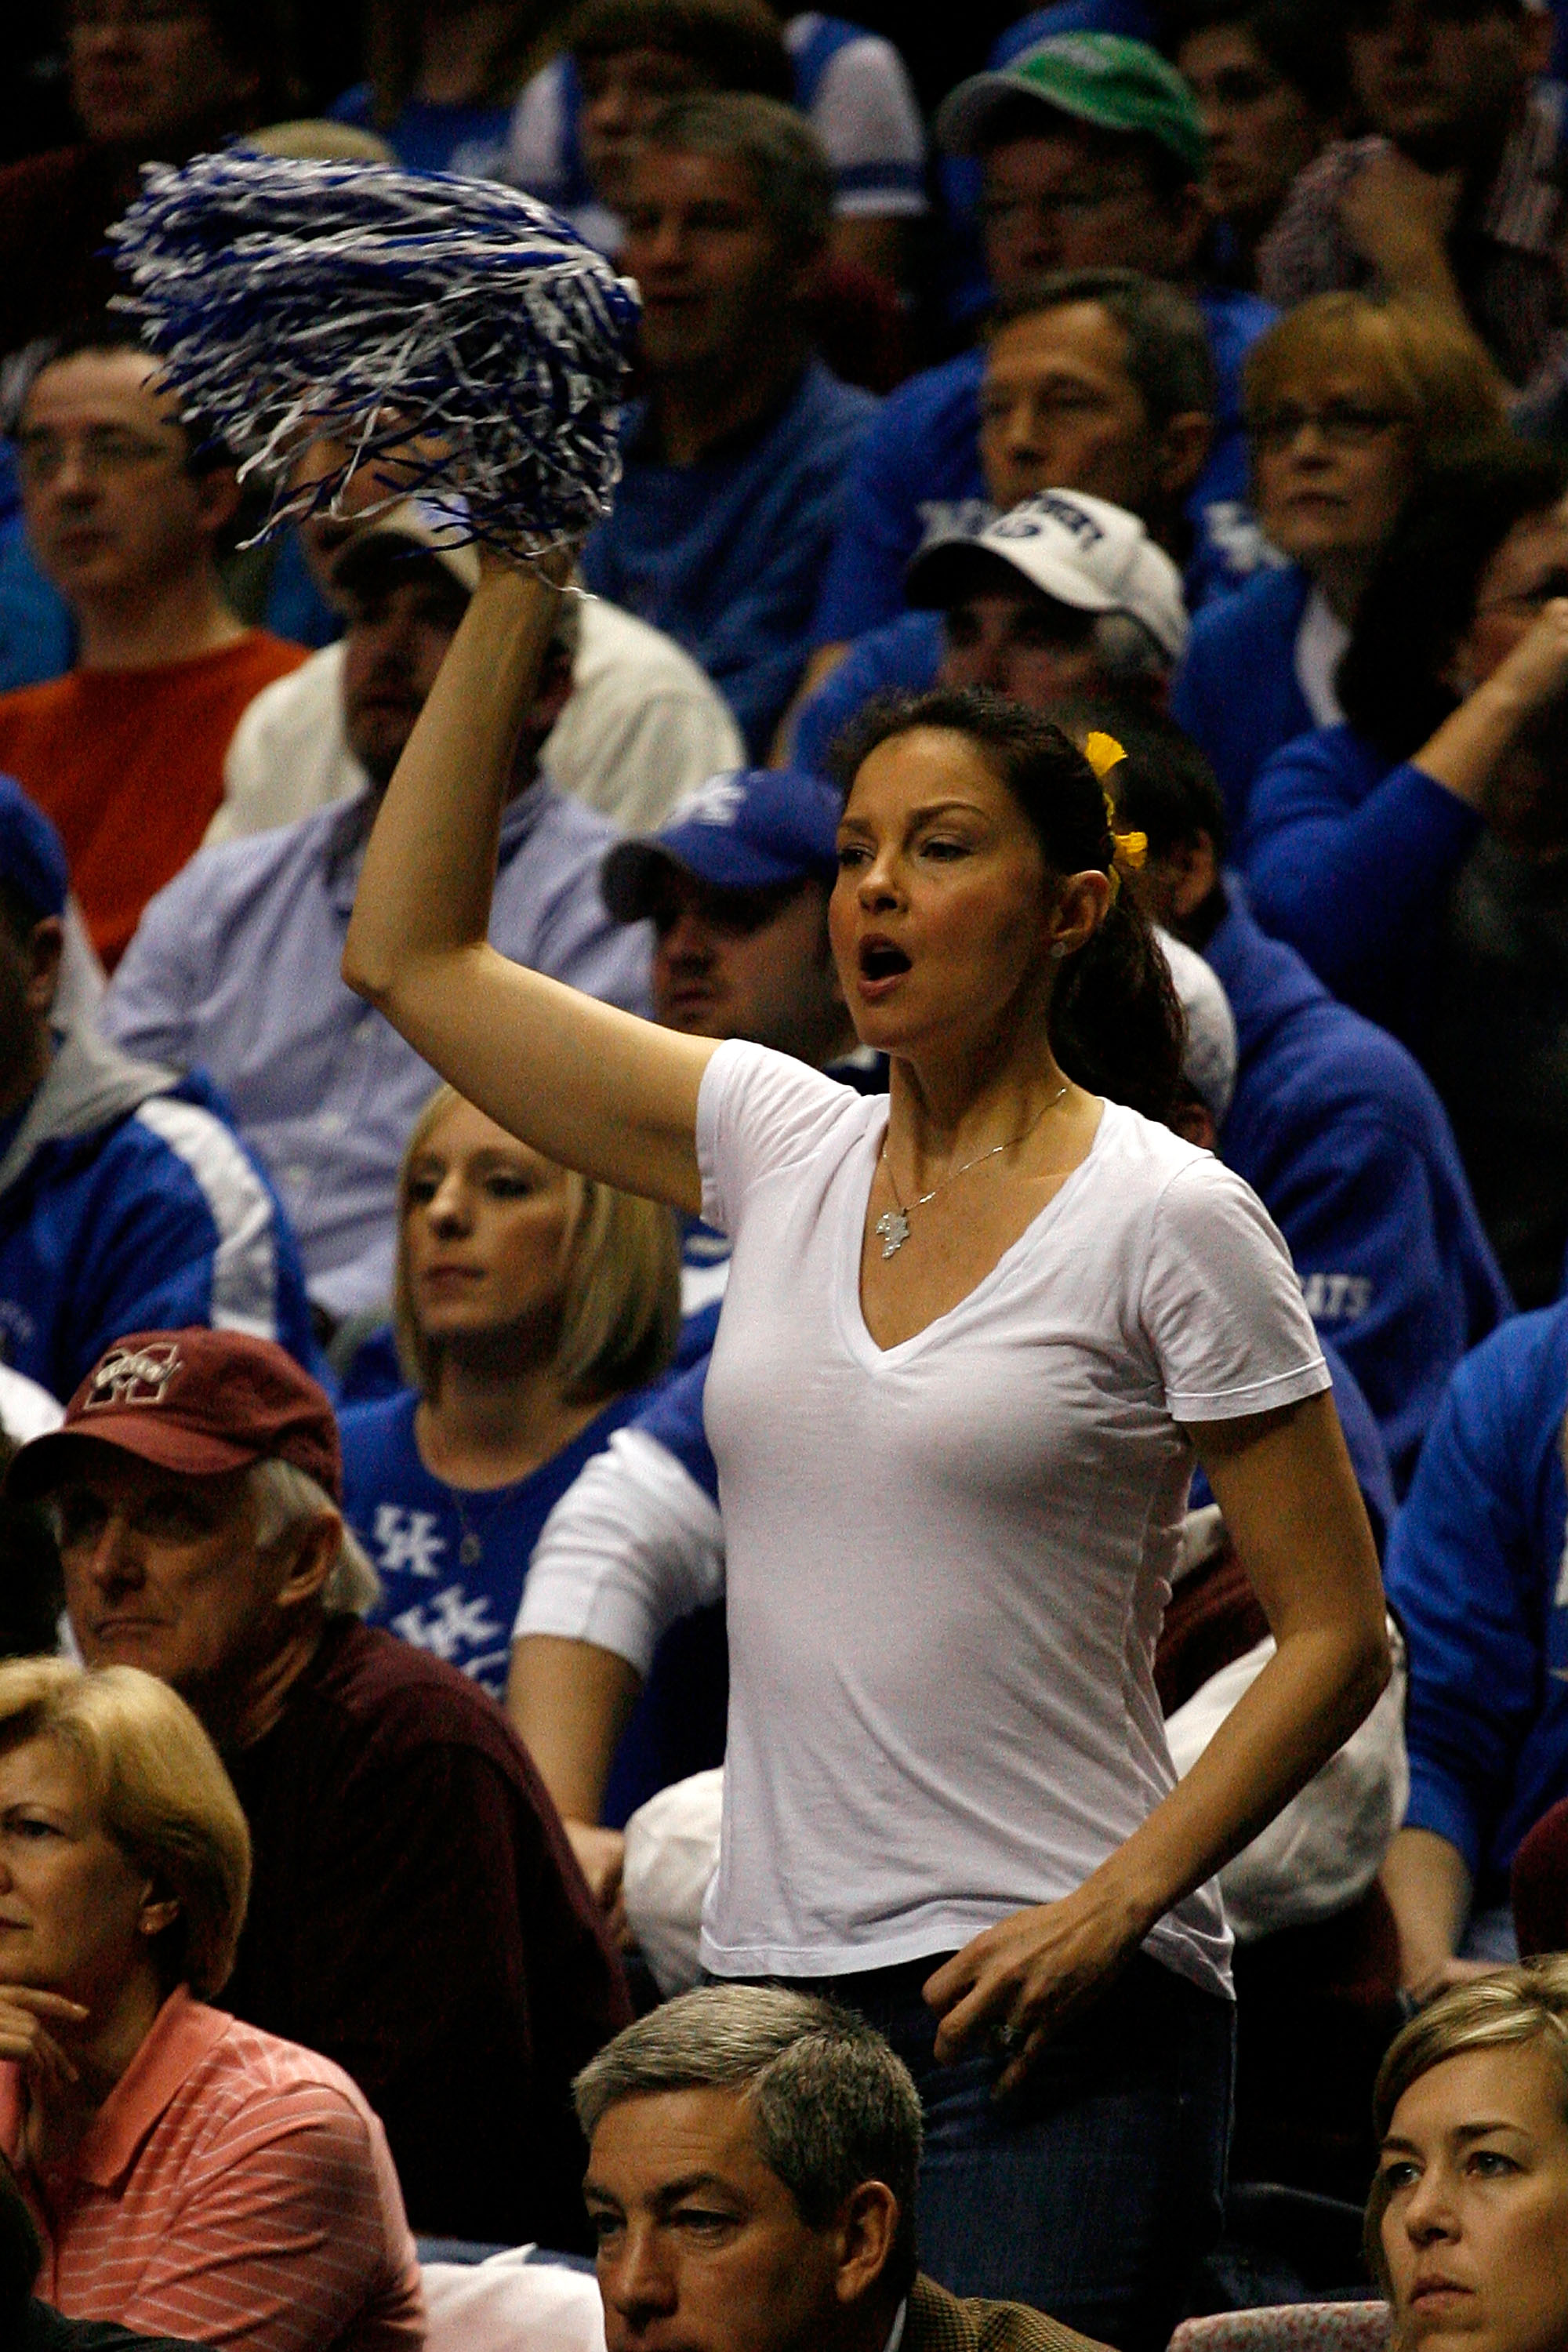 NASHVILLE, TN - MARCH 14:  Actress Ashley Judd cheers for the Kentucky Wildcats against the Mississippi State Bulldogs during the final of the SEC Men's Basketball Tournament at the Bridgestone Arena on March 14, 2010 in Nashville, Tennessee.  (Photo by C